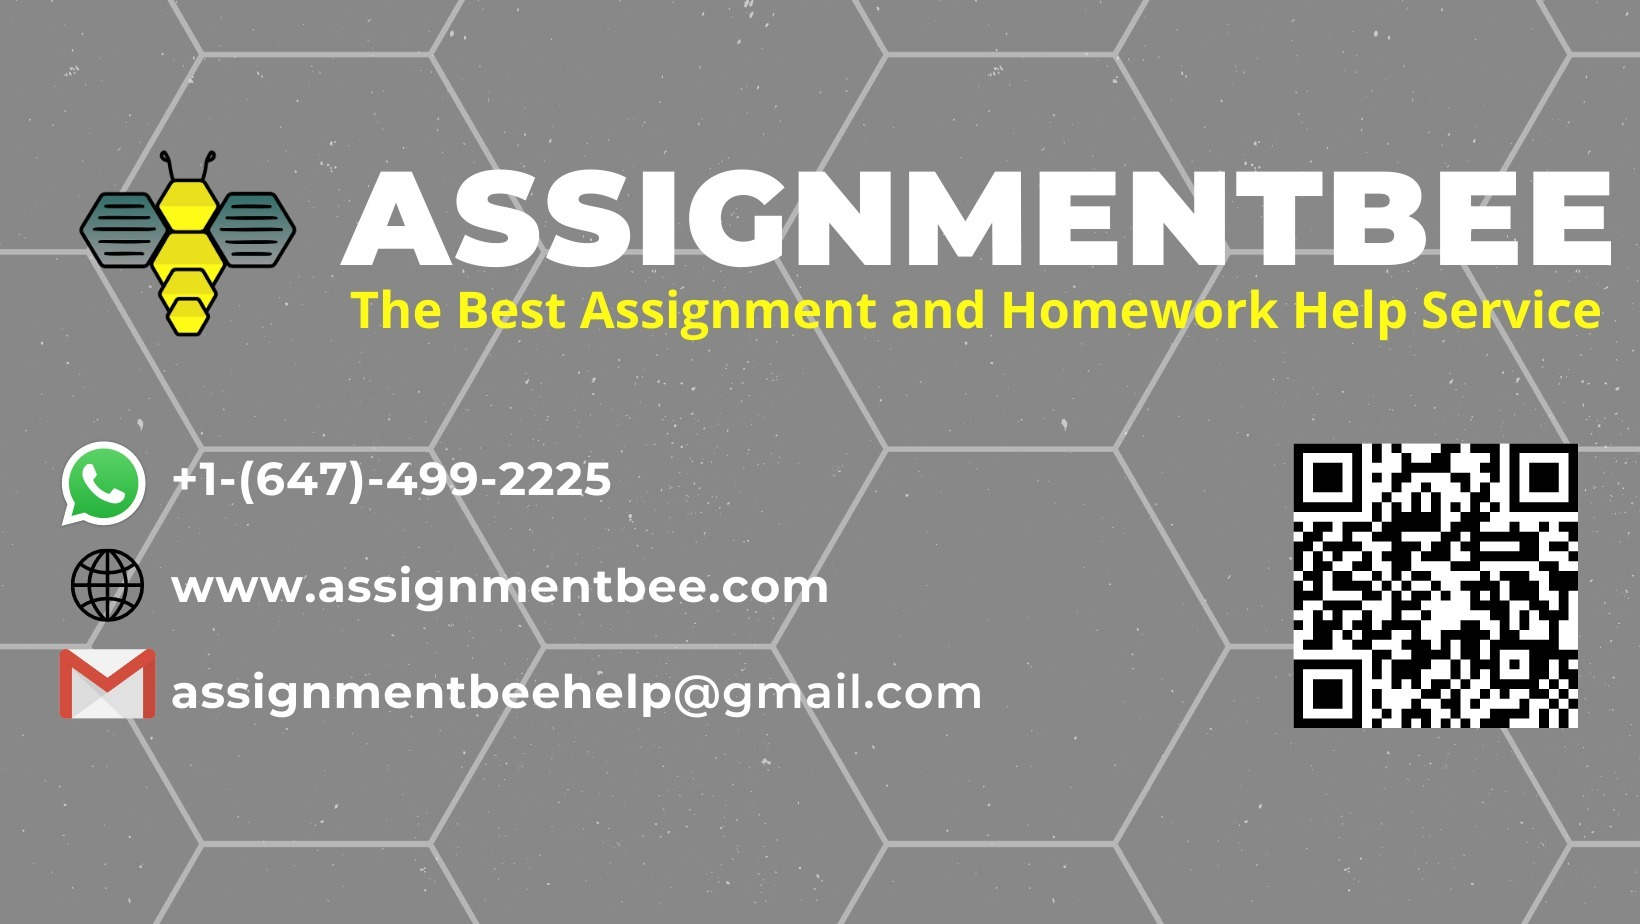 Assignmentbee (@assignmentbee) Cover Image